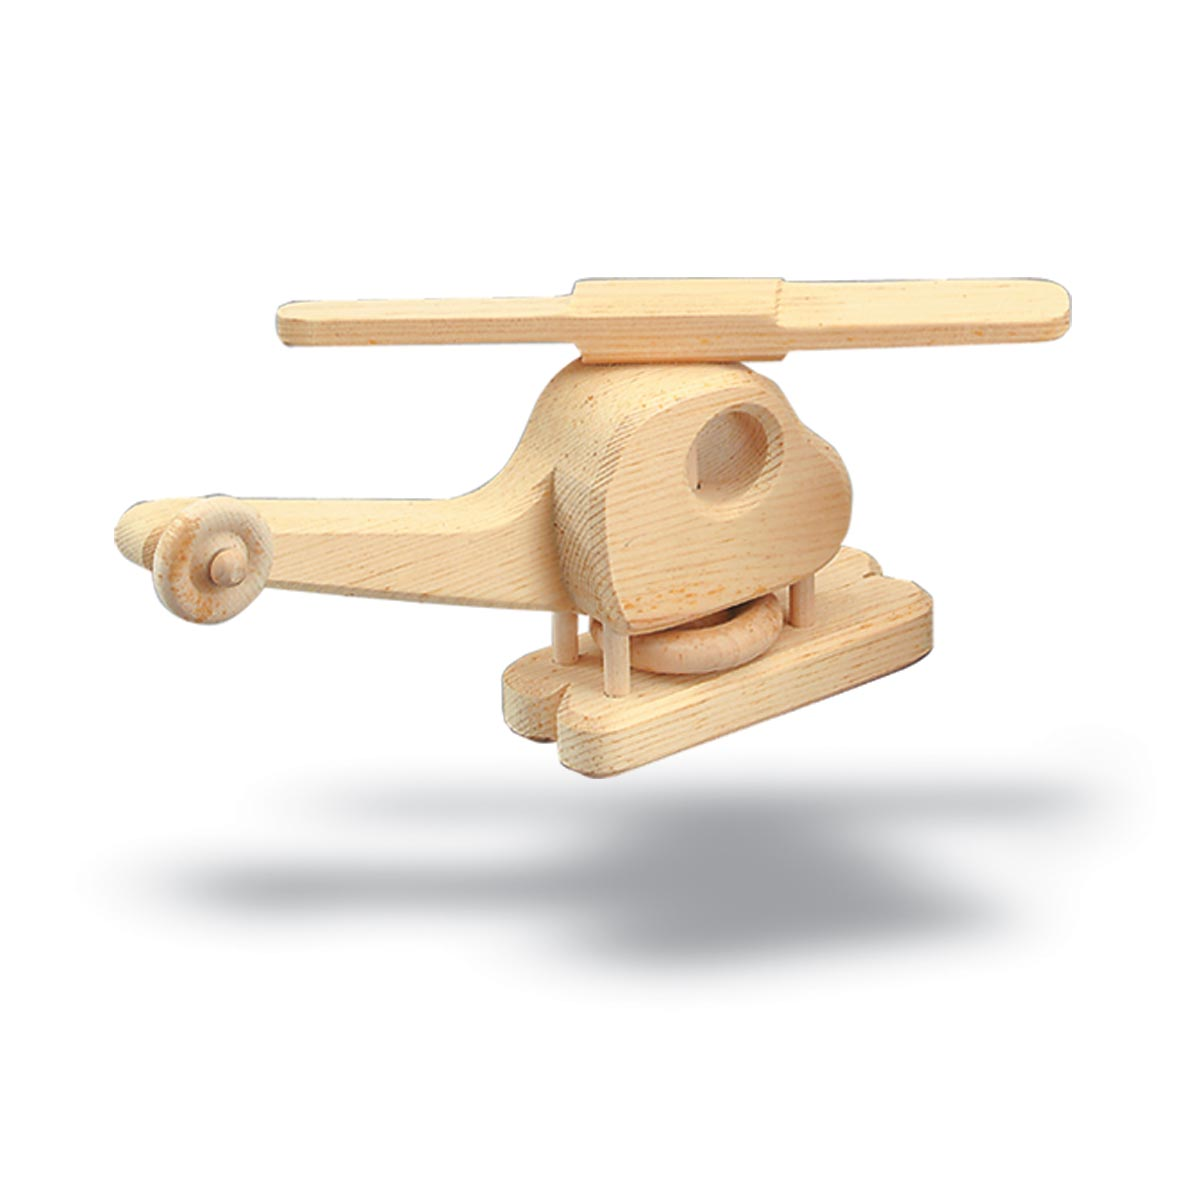 Toys Joys Wood Patterns : Bi plane and helicopter woodworking pattern